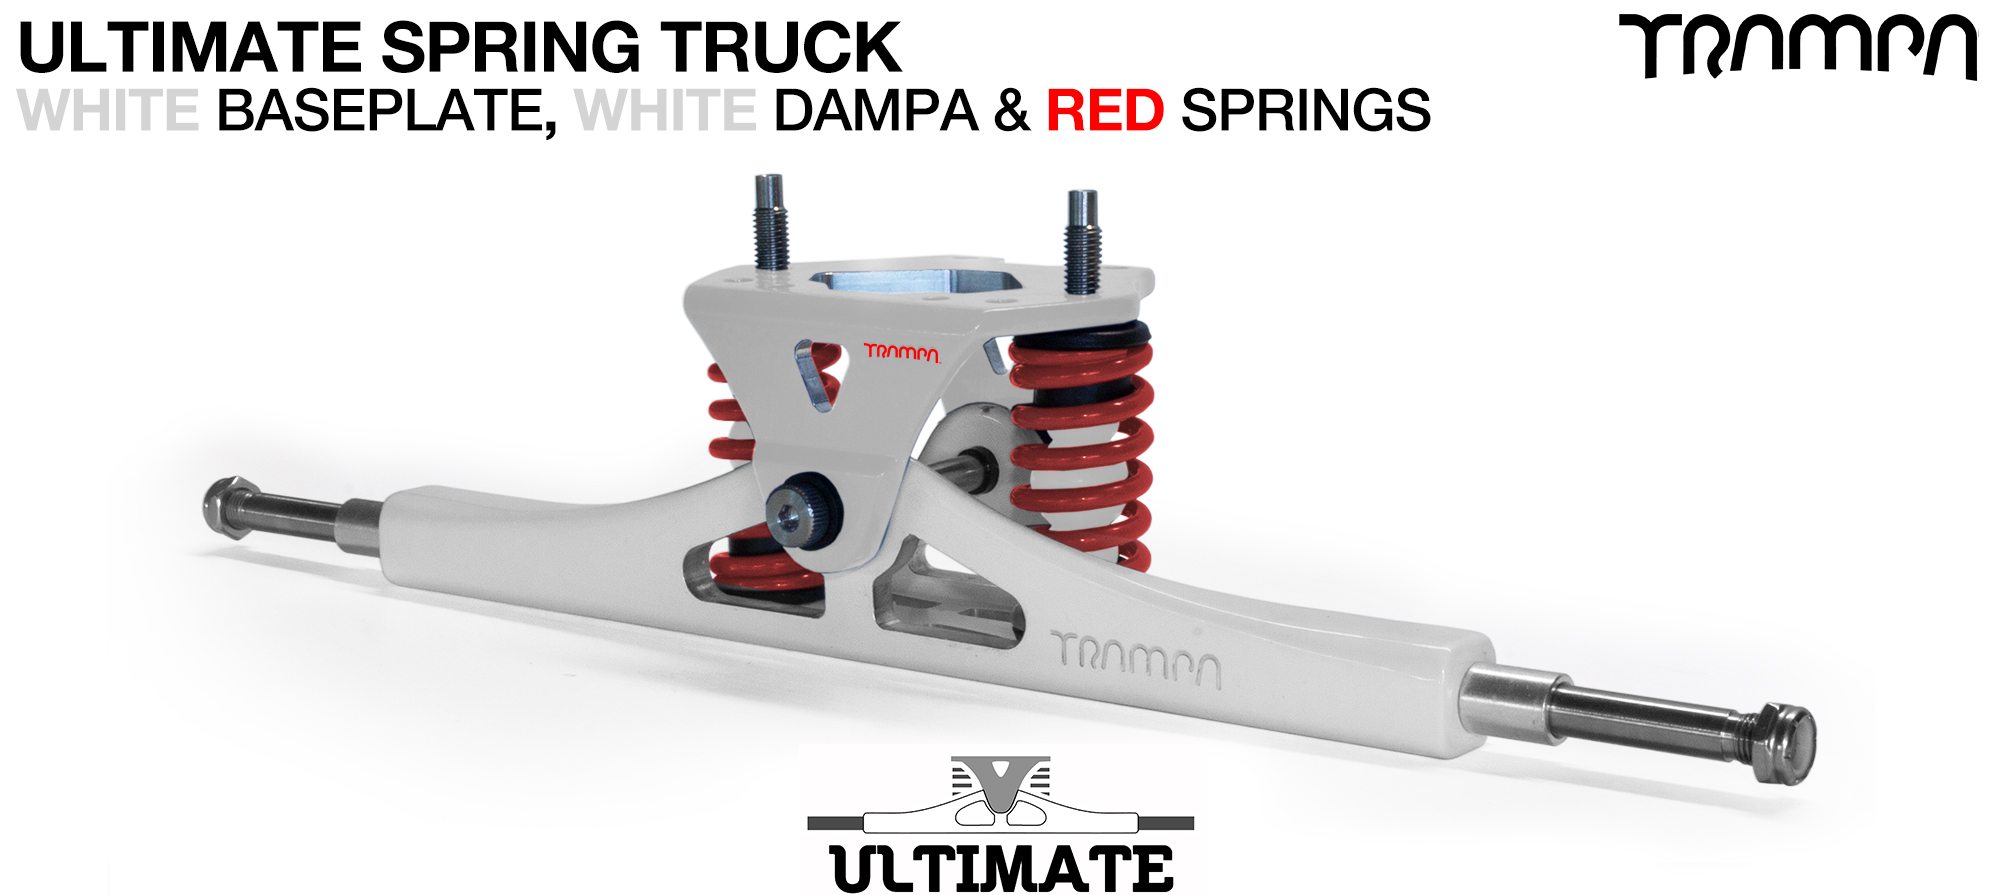 ULTIMATE Truck - WHITE & RED logo Baseplate on White TITANIUM Axles & Kingpin